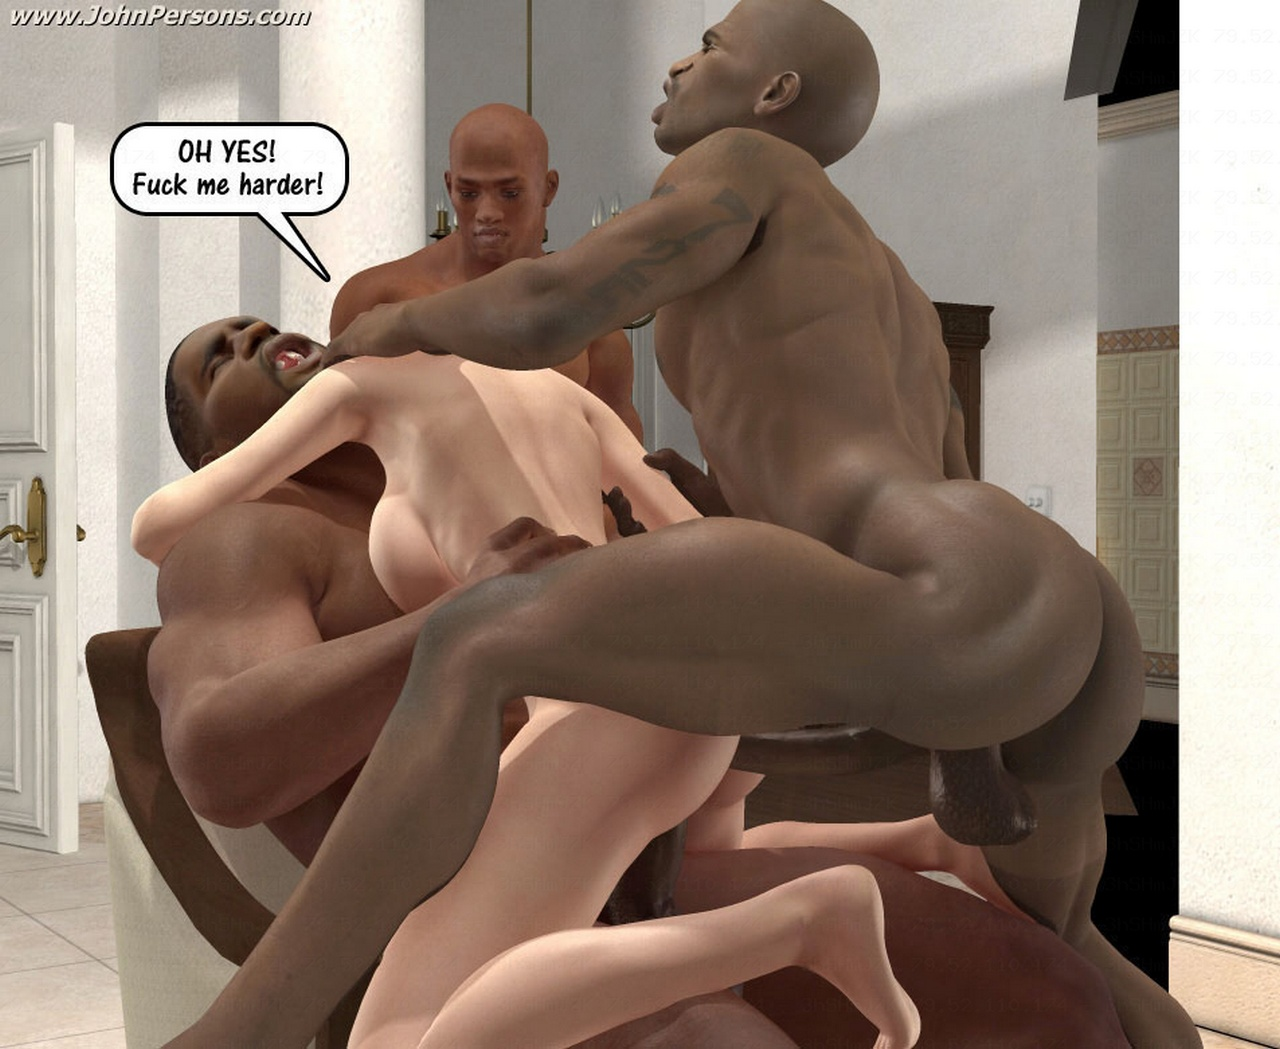 3d forced cartoon sex porn sexy images